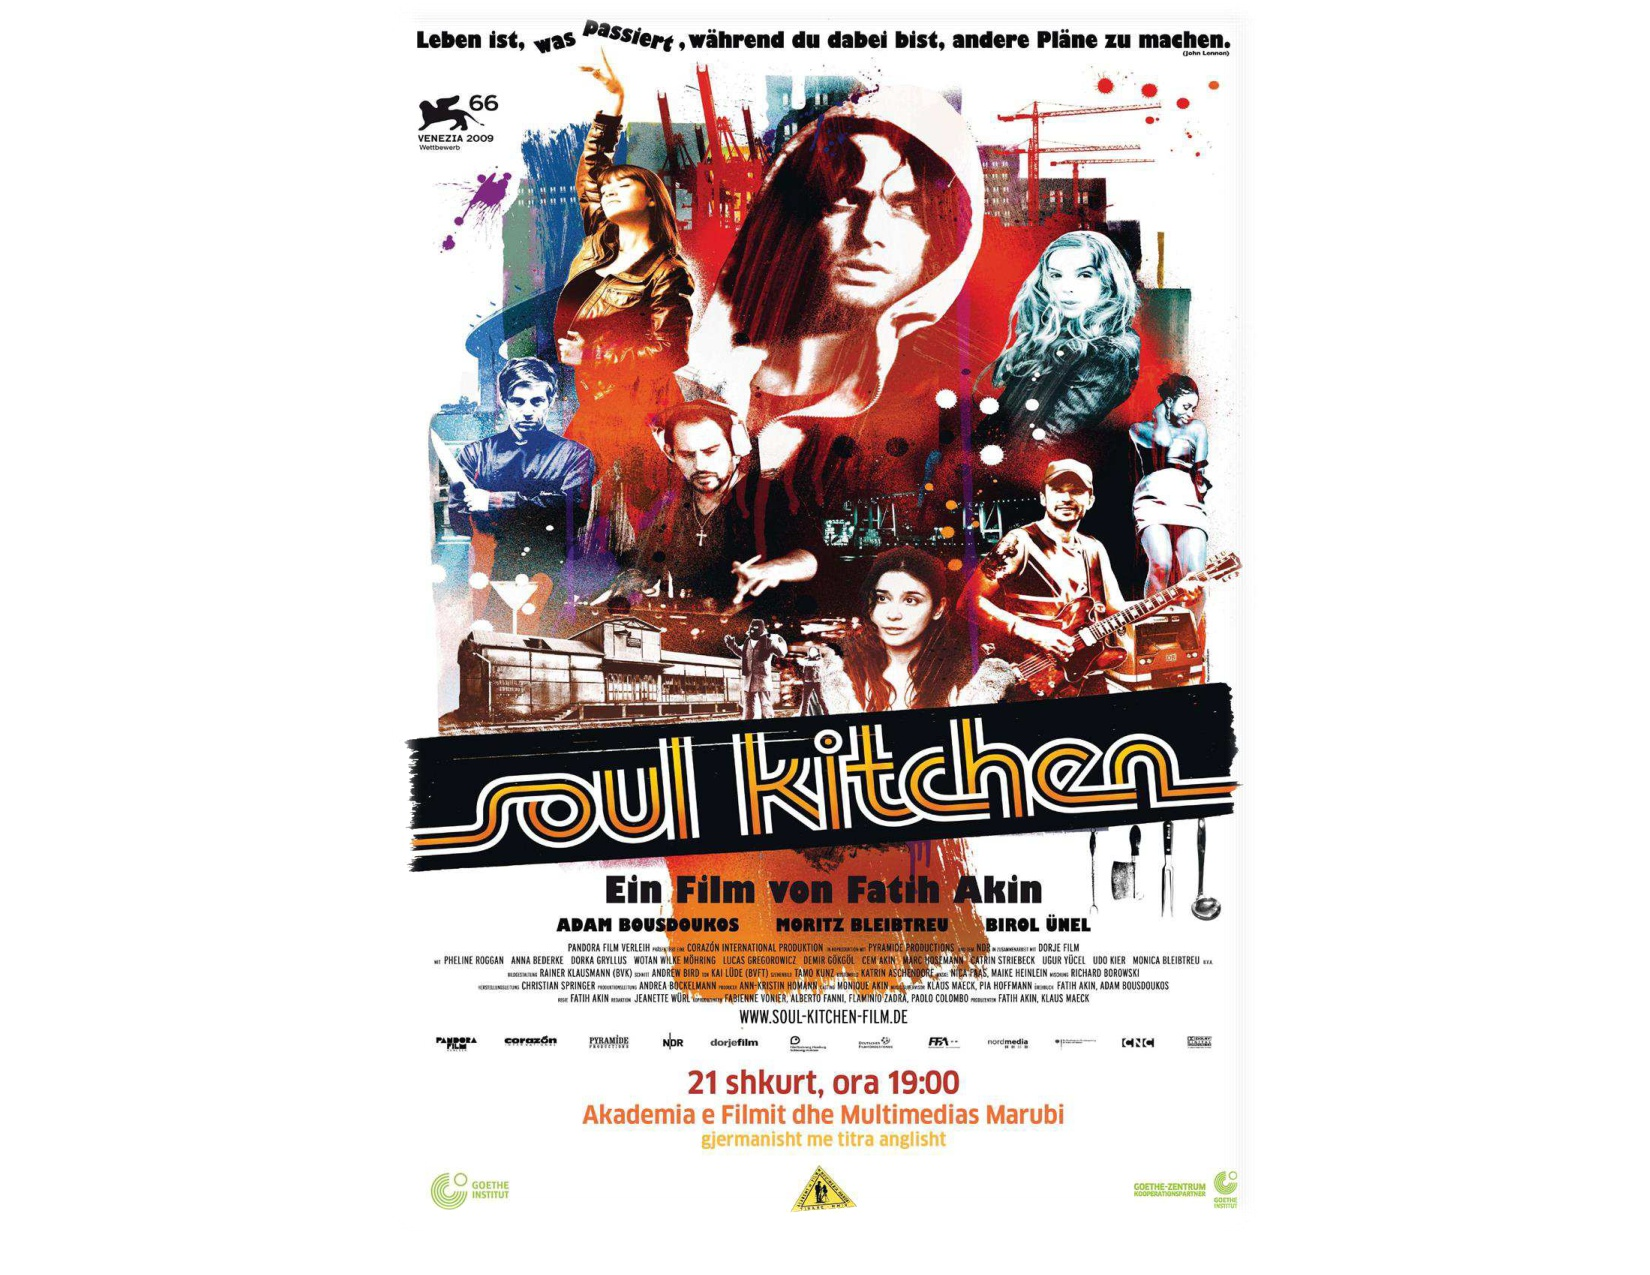 Soul kitchen (Movie) organizuar nga Goethe-Zentrum